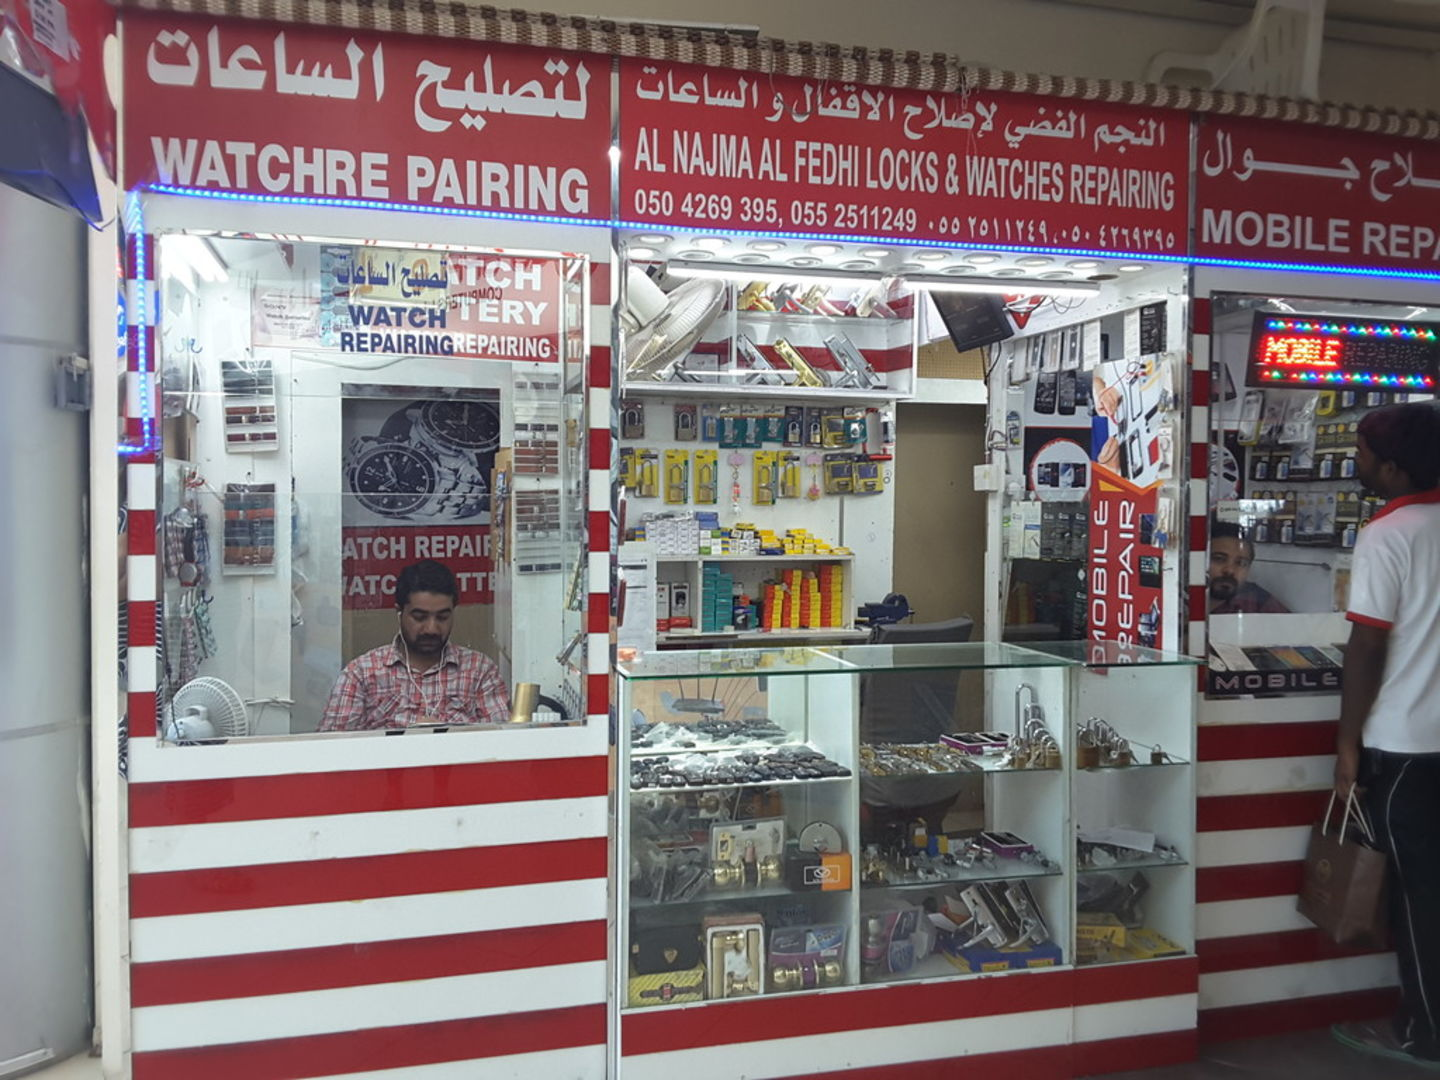 HiDubai-business-al-najma-al-fedhi-locks-watches-repairing-home-shoe-bag-repair-dubai-investment-park-1-dubai-2